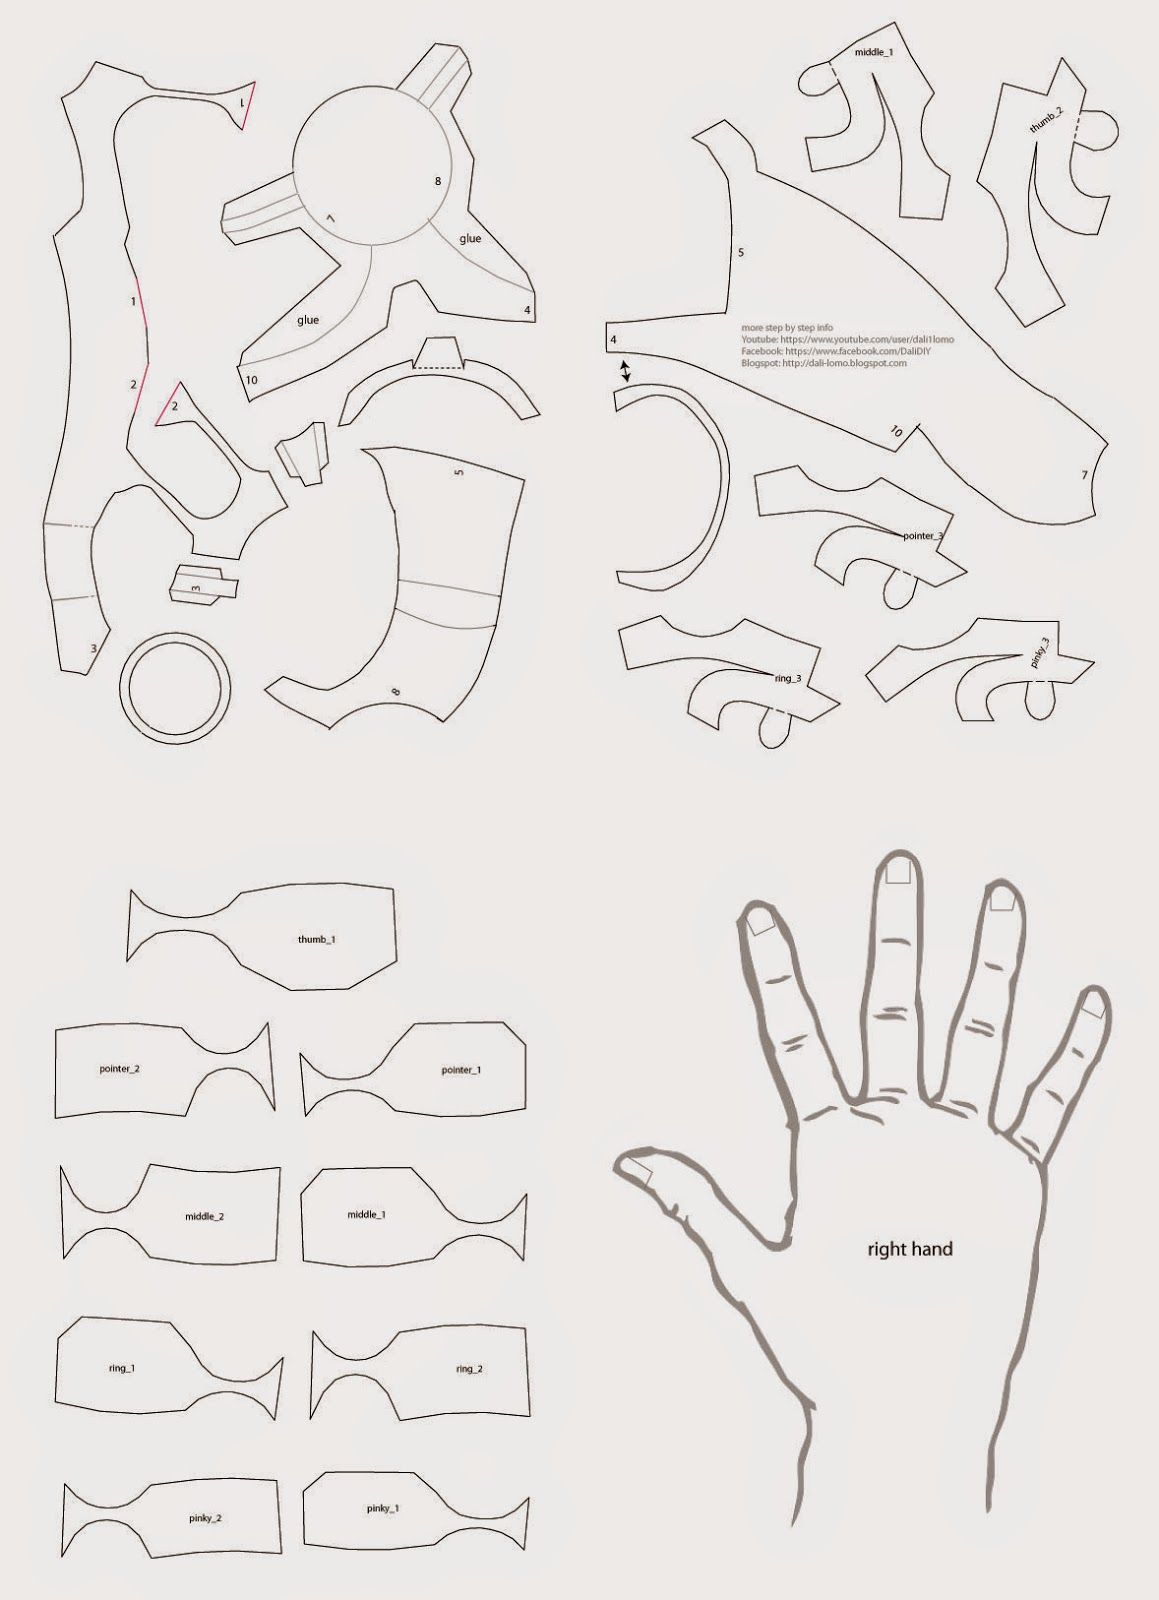 Iron Man Hand Diy With Cereal Box Template